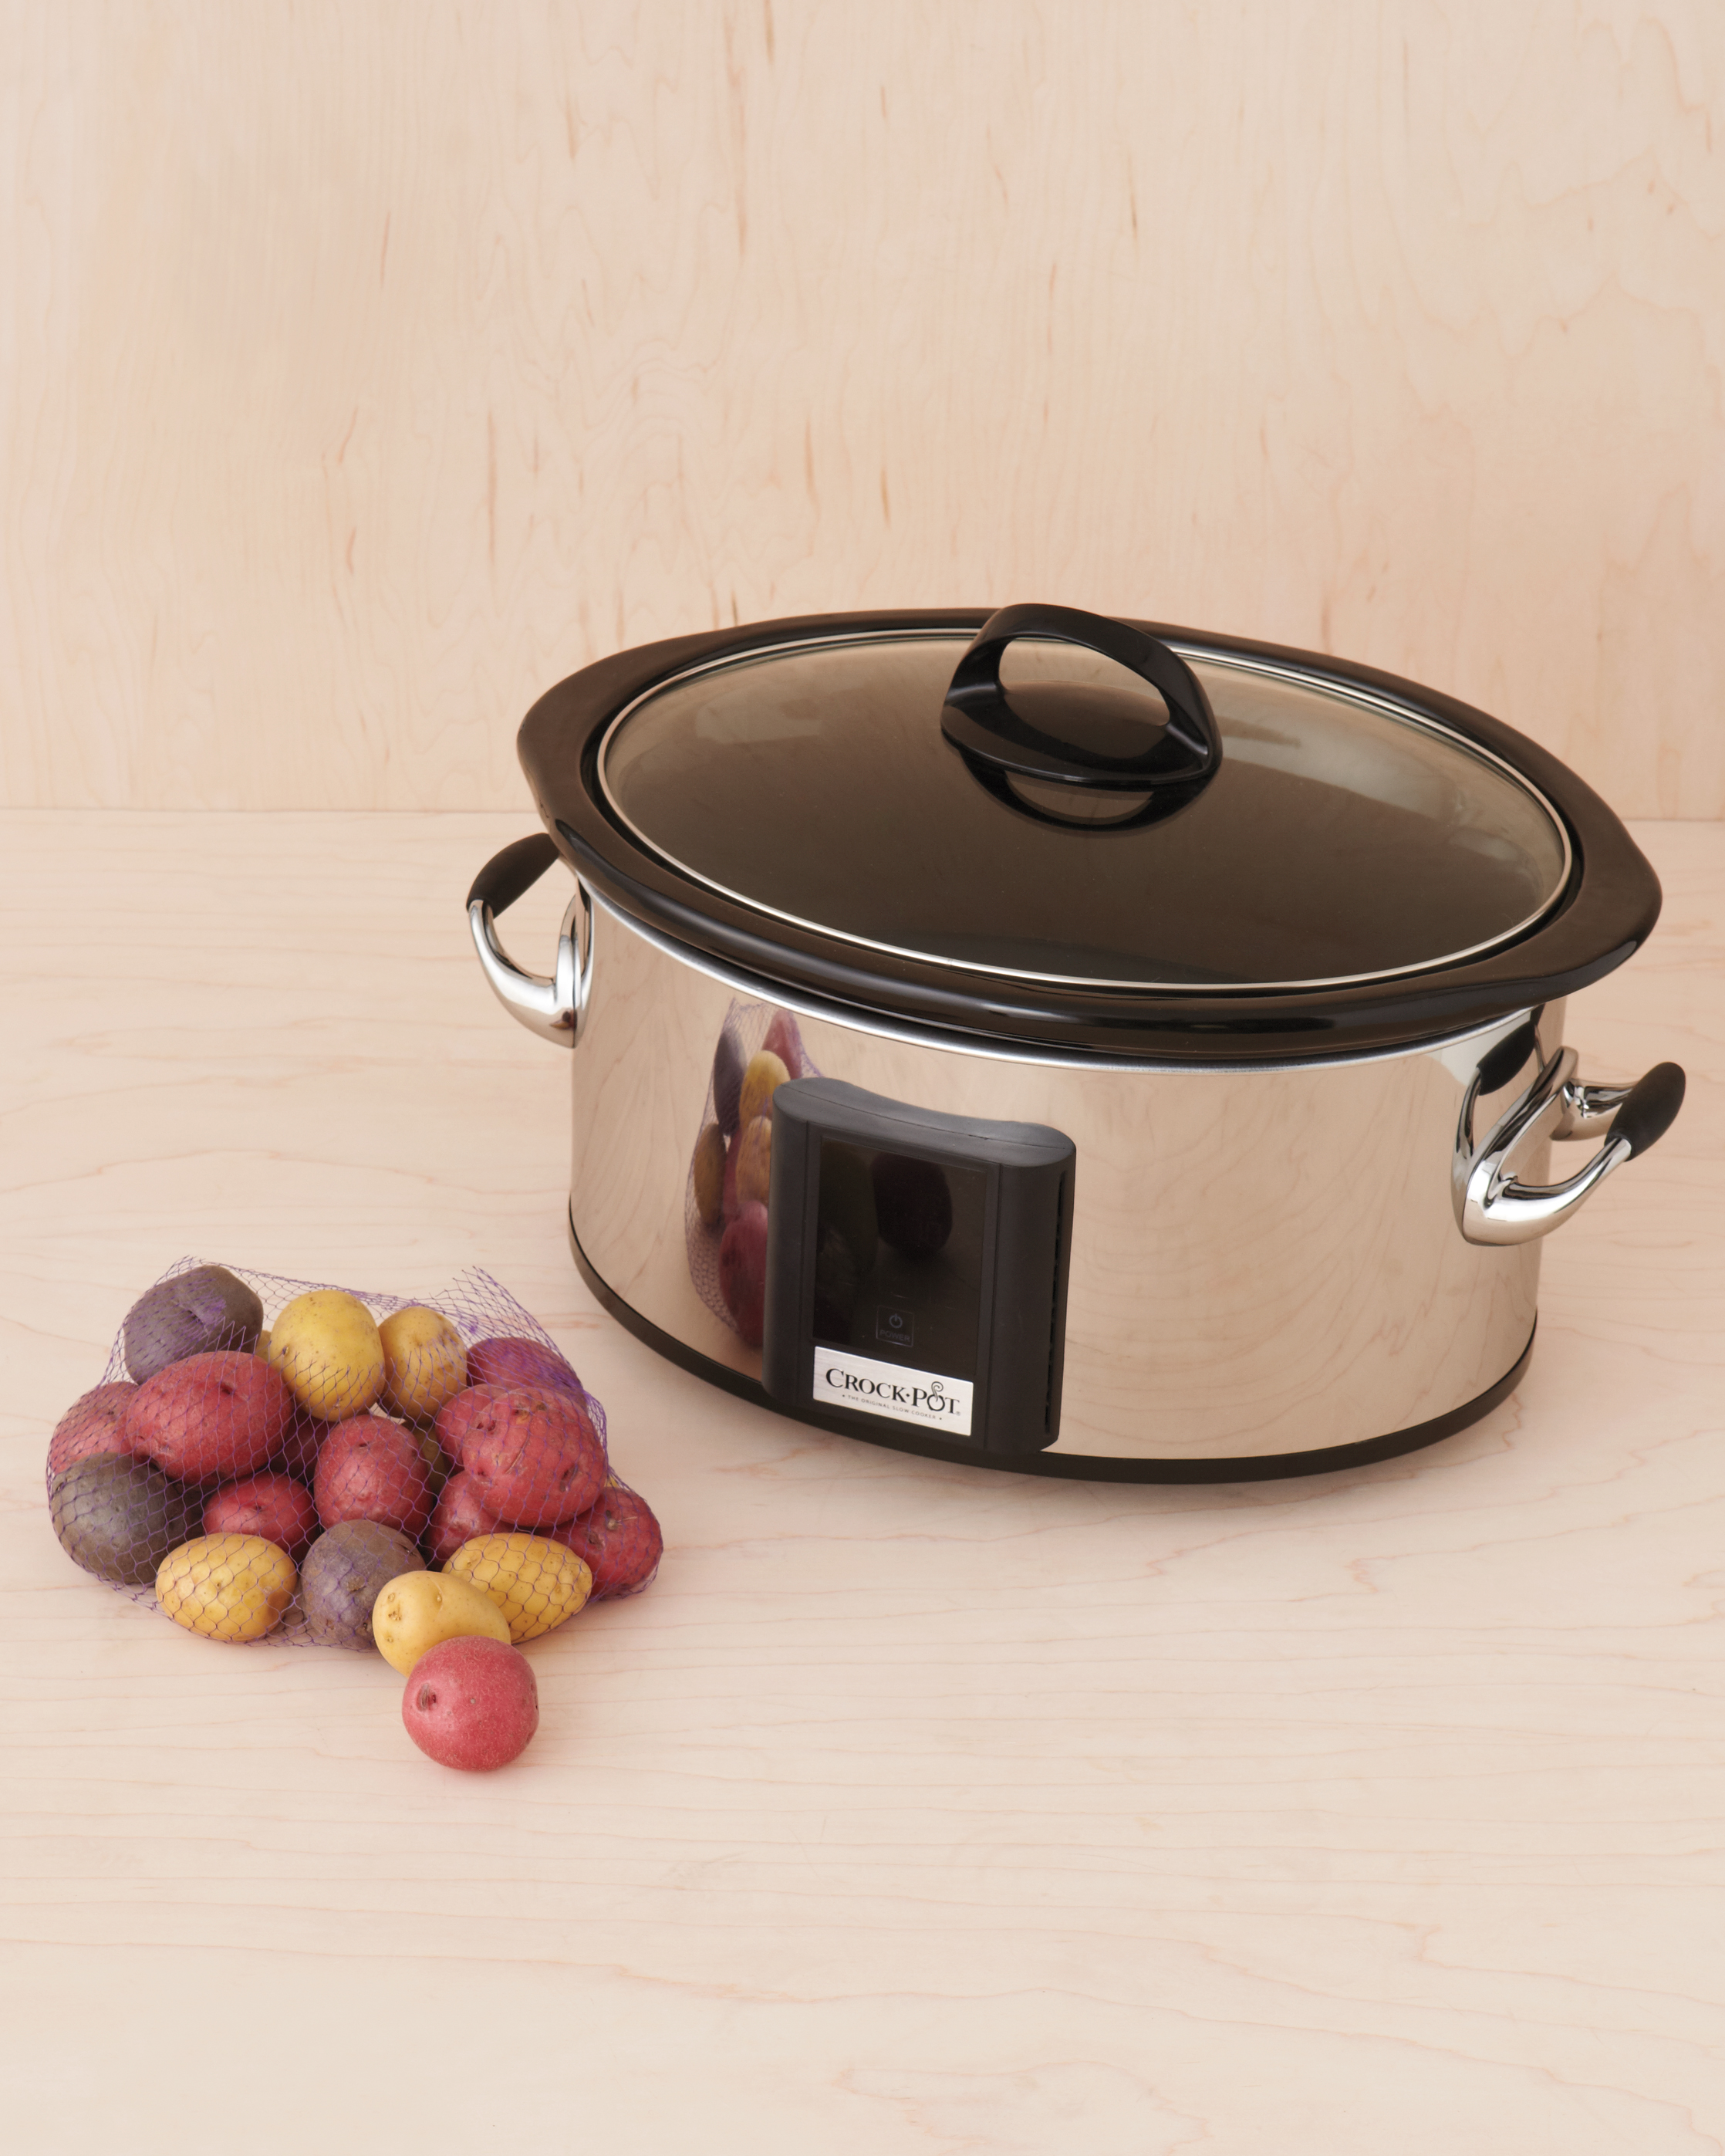 crock-pot-013-mwd109796.jpg